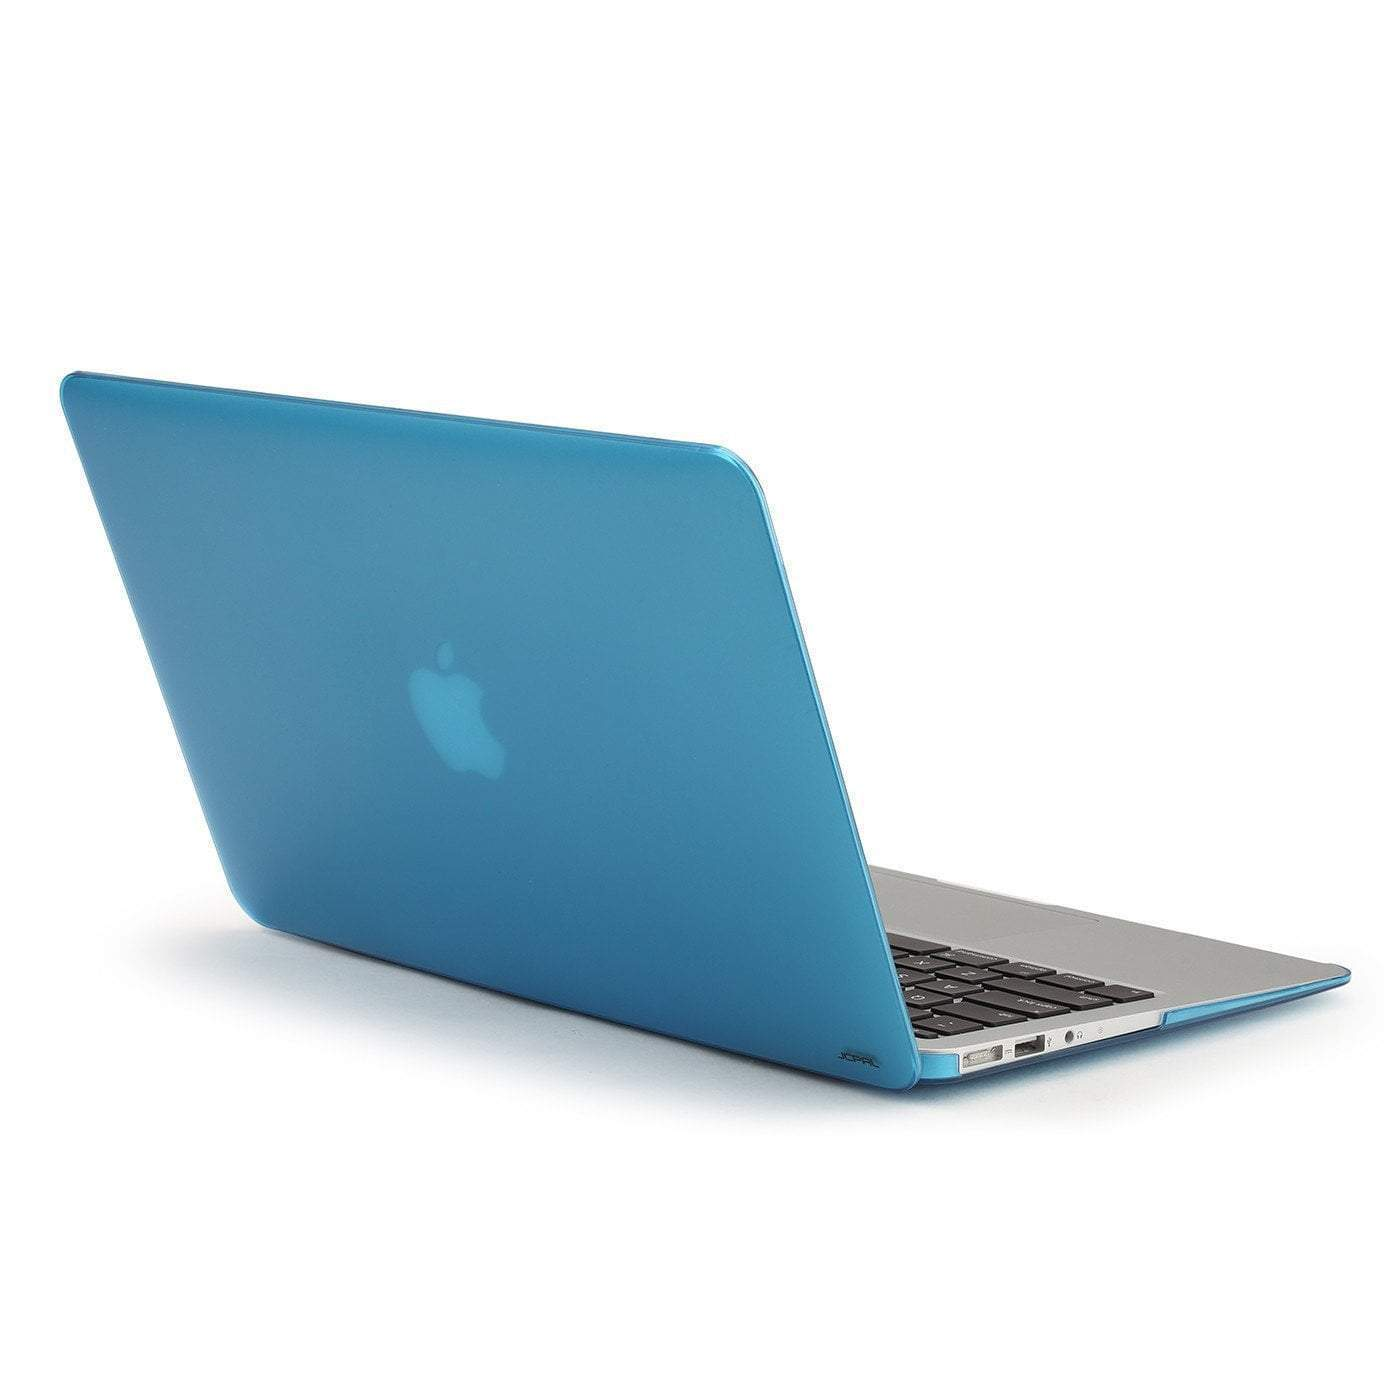 "JCPal Case MacGuard Ultra-thin Protective Case for MacBook Air 11"" MacBook Air 11"" / Blue"